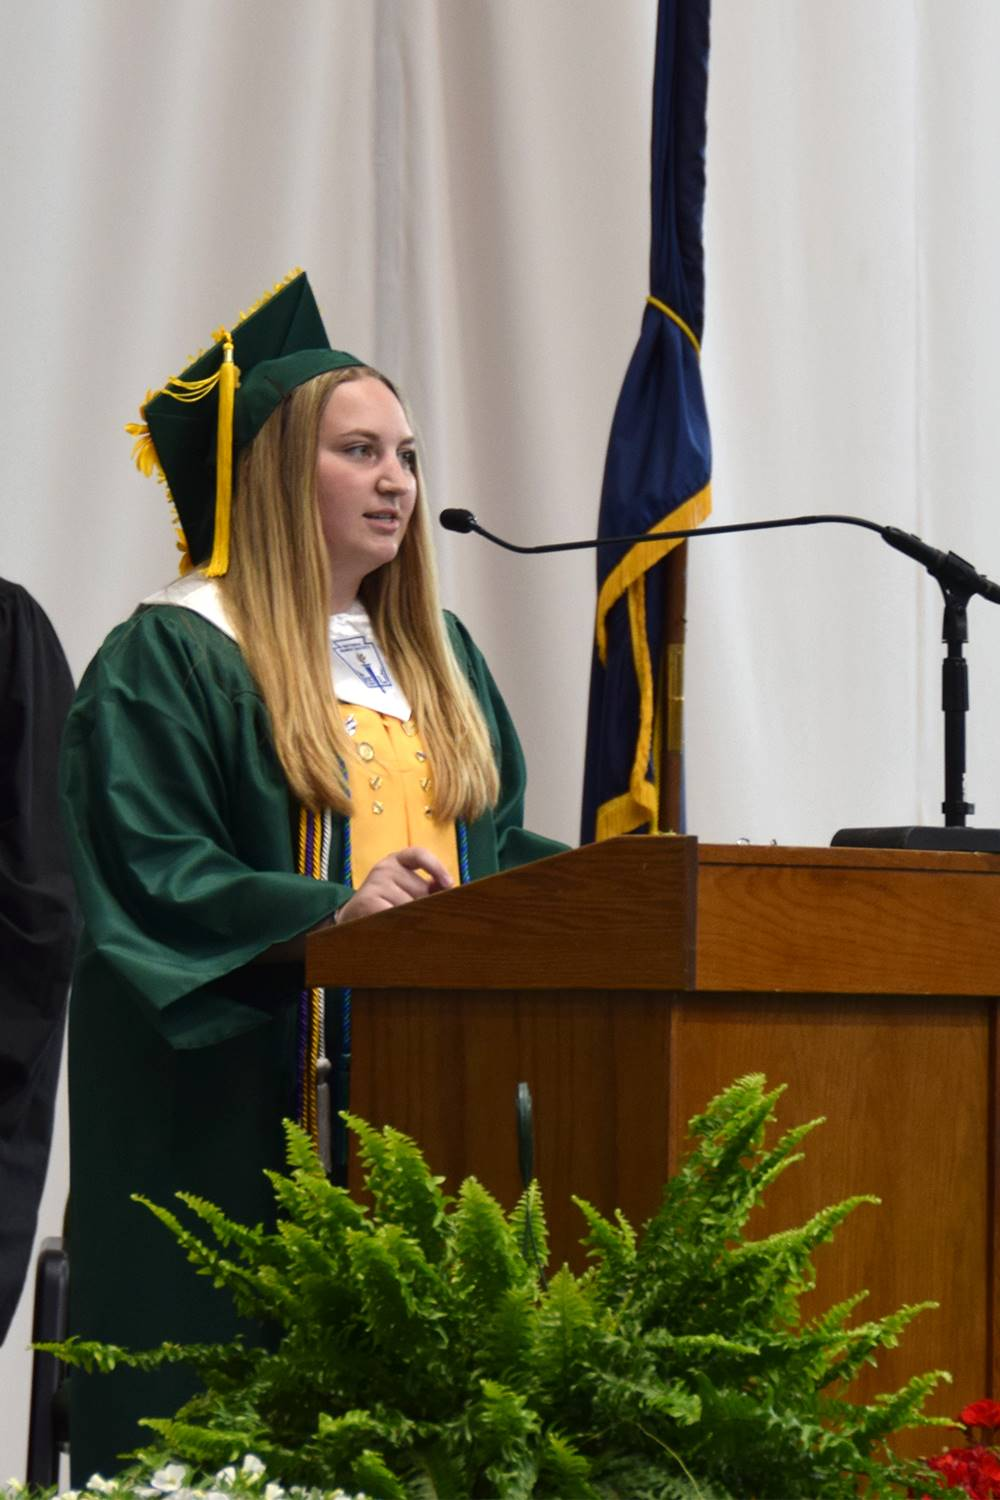 Vestal High School's National Honor Society President leads her class in the Pledge of Allegiance fo